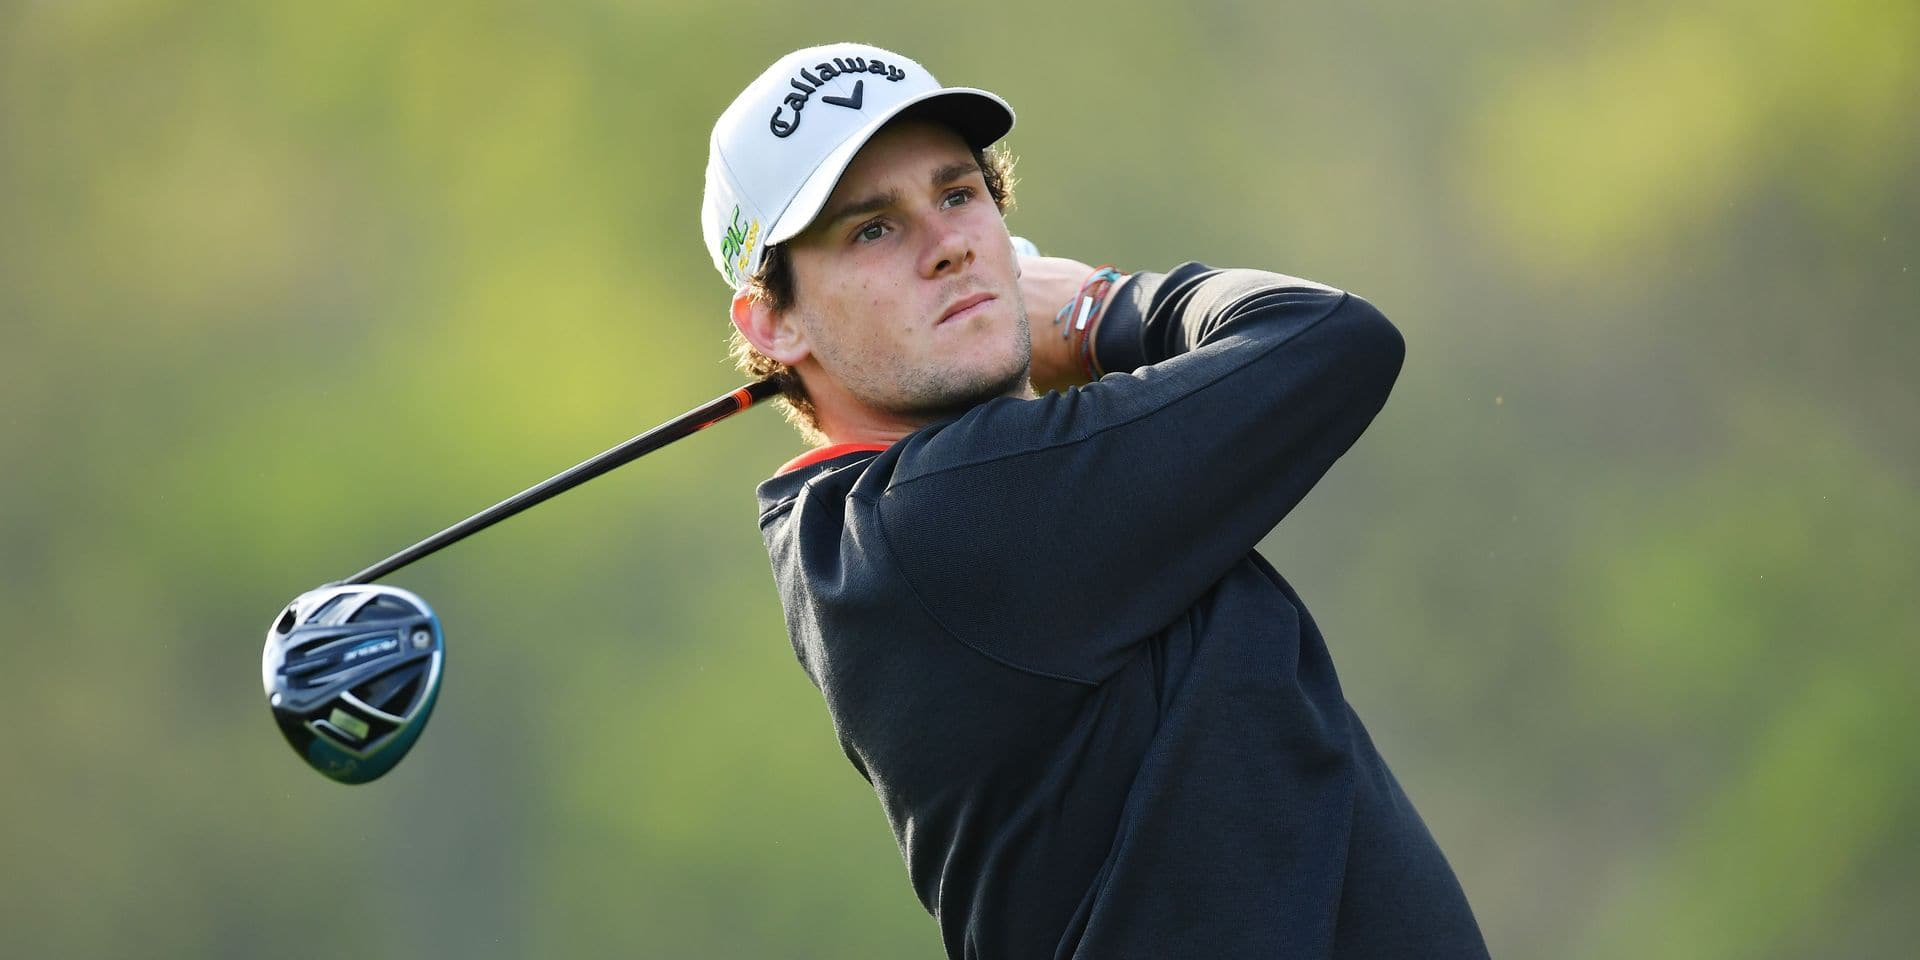 FARMINGDALE, NEW YORK - MAY 16: Thomas Pieters of Belgium plays his shot from the 12th tee during the first round of the 2019 PGA Championship at the Bethpage Black course on May 16, 2019 in Farmingdale, New York. Stuart Franklin/Getty Images/AFP == FOR NEWSPAPERS, INTERNET, TELCOS & TELEVISION USE ONLY ==